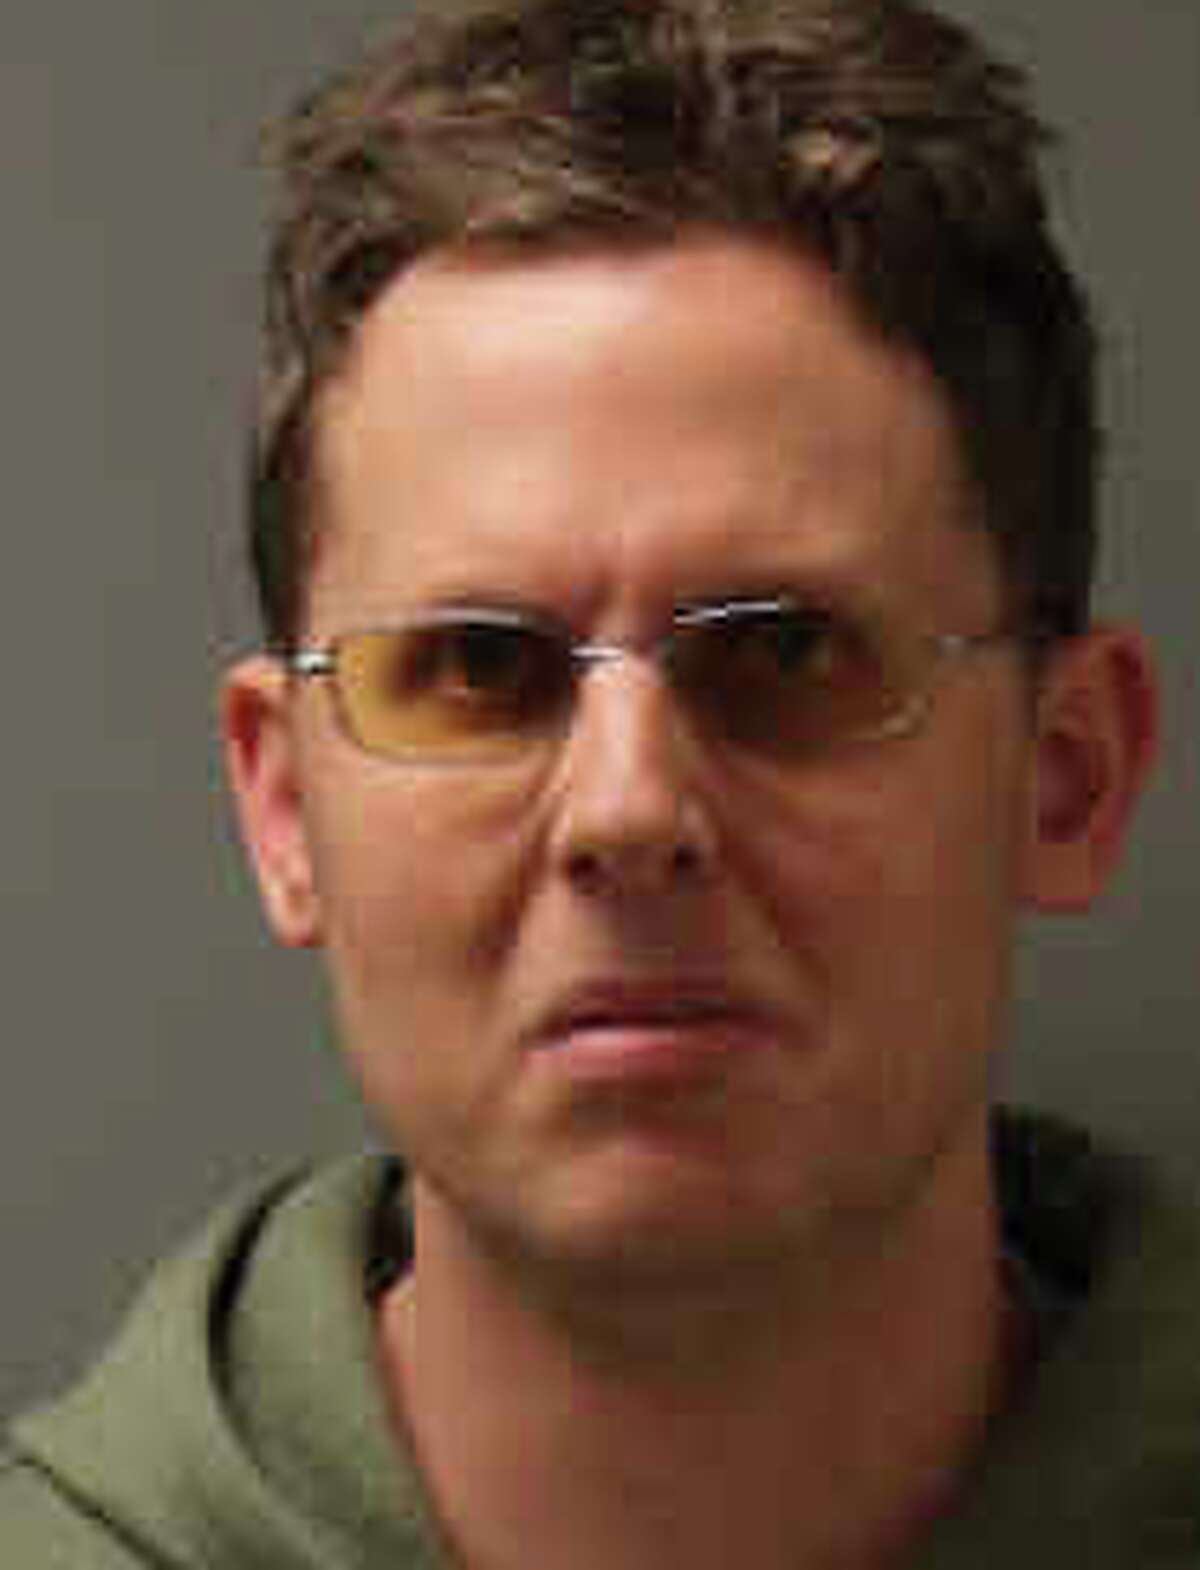 Kevin Cringle, 29, has been arrested in a stalking case that allegedly began over a decade ago when the victim, a fellow classmate, allegedly told Cringle to cover his mouth after coughing.